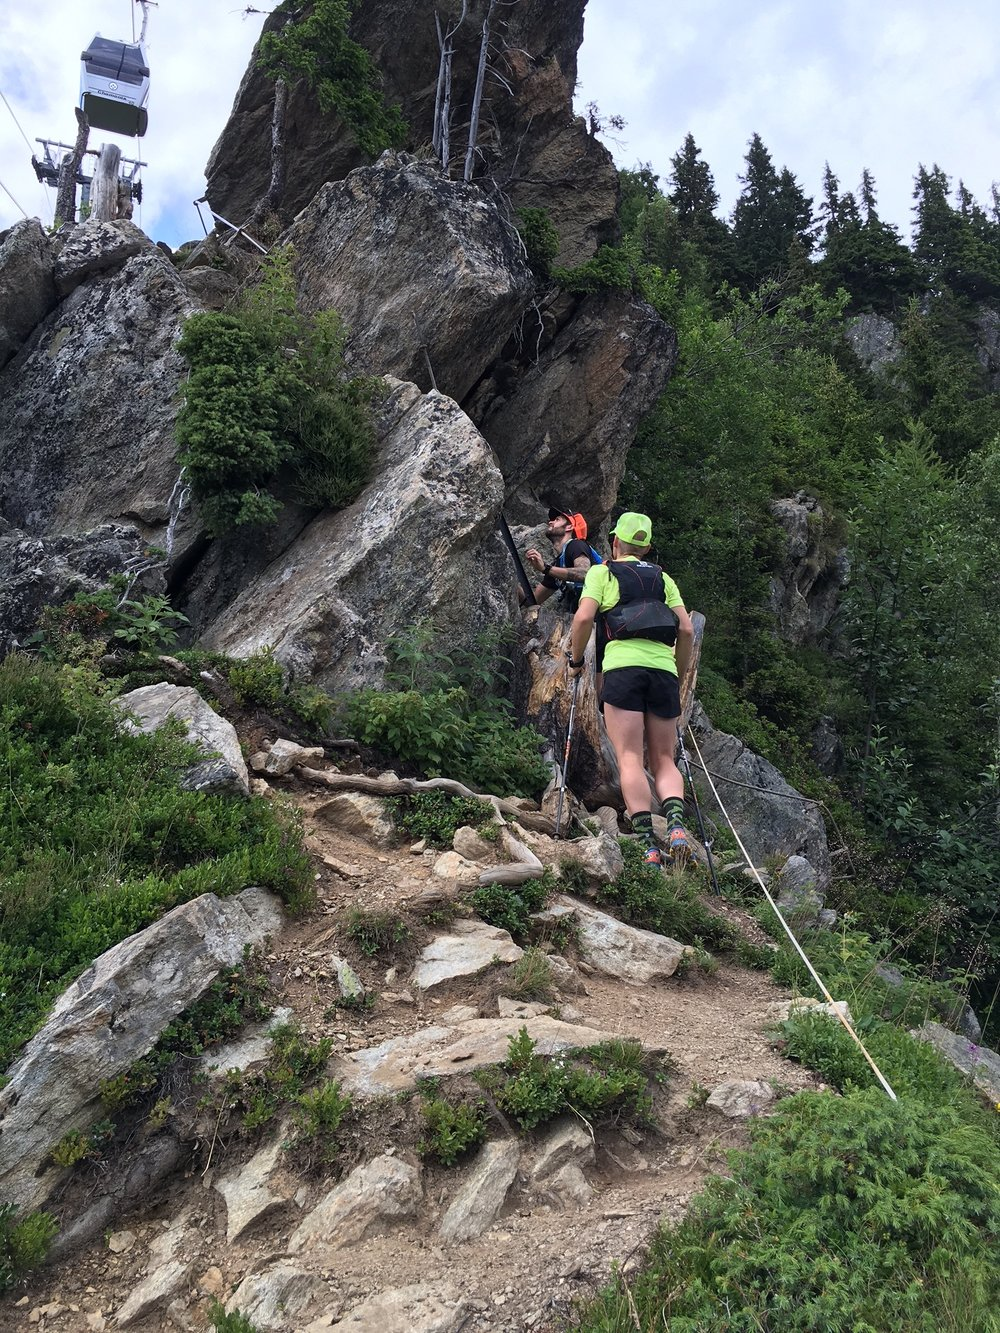 Reaching the top of the VKM